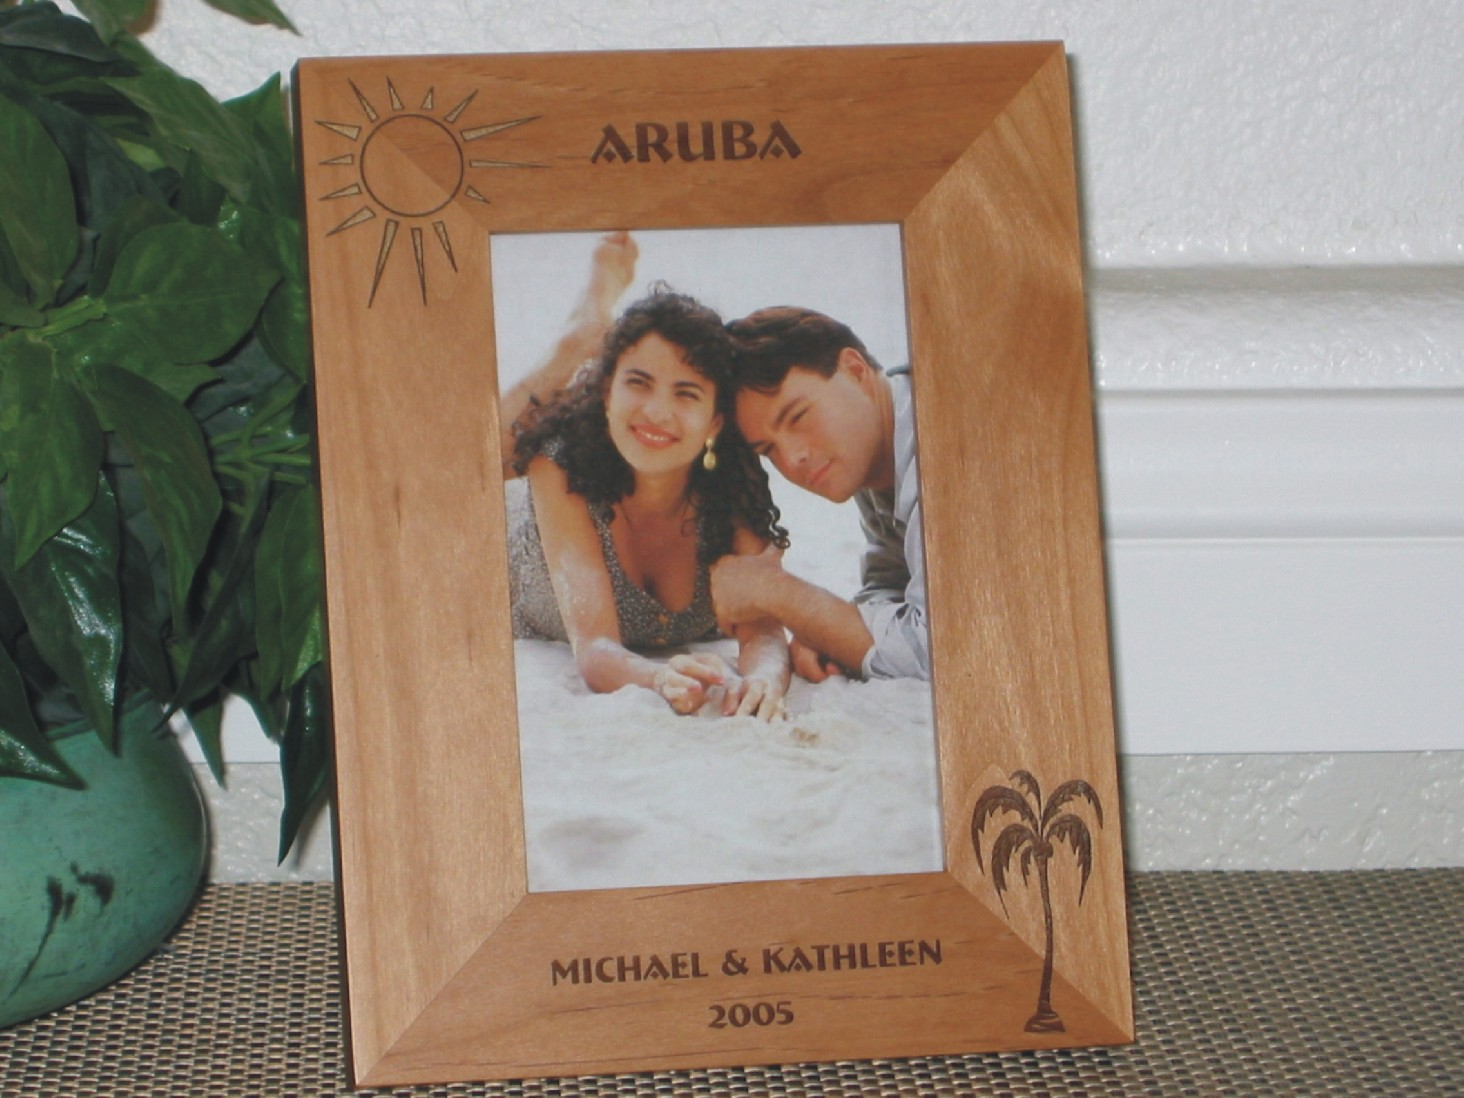 aruba picture frame personalized frame laser engraved palm tree